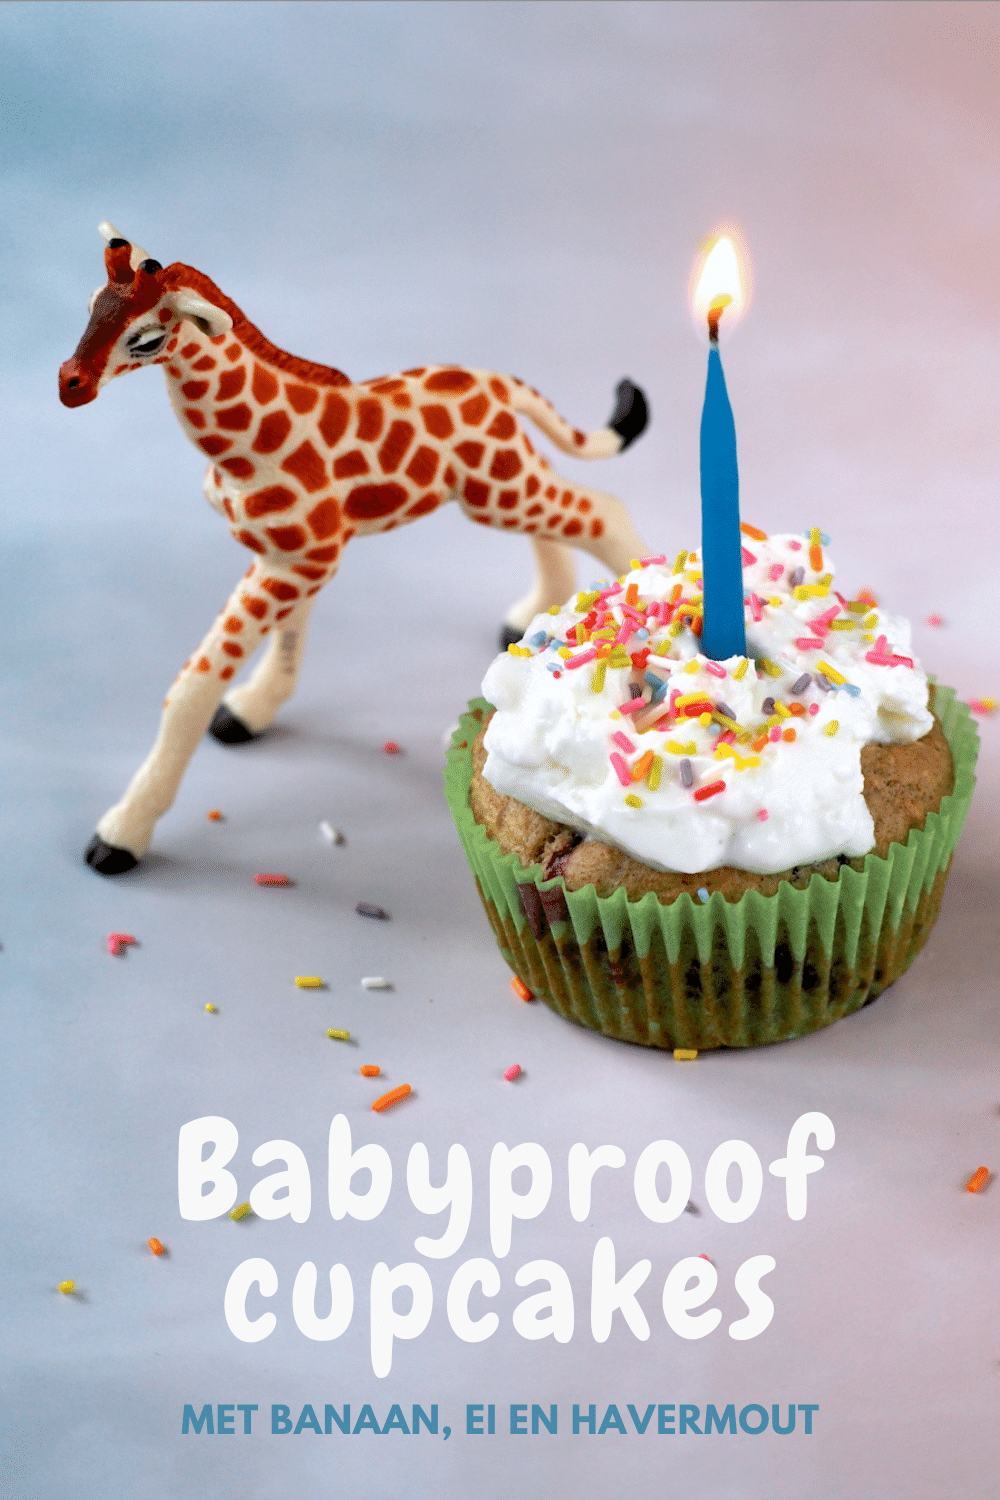 Babyproof cupcakes pin